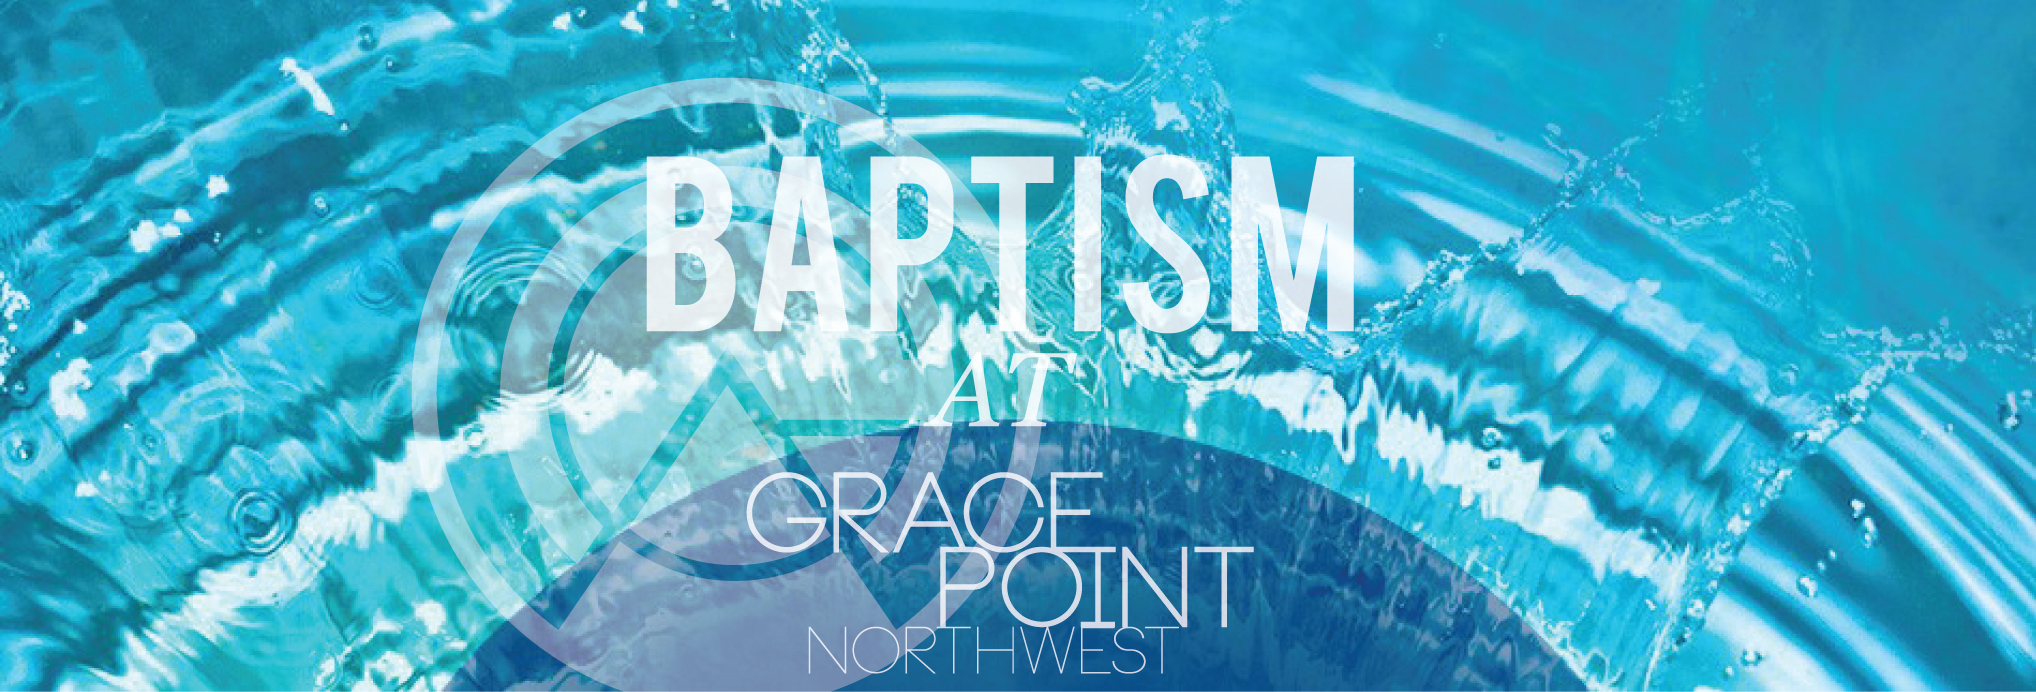 baptism-banner-website.jpg